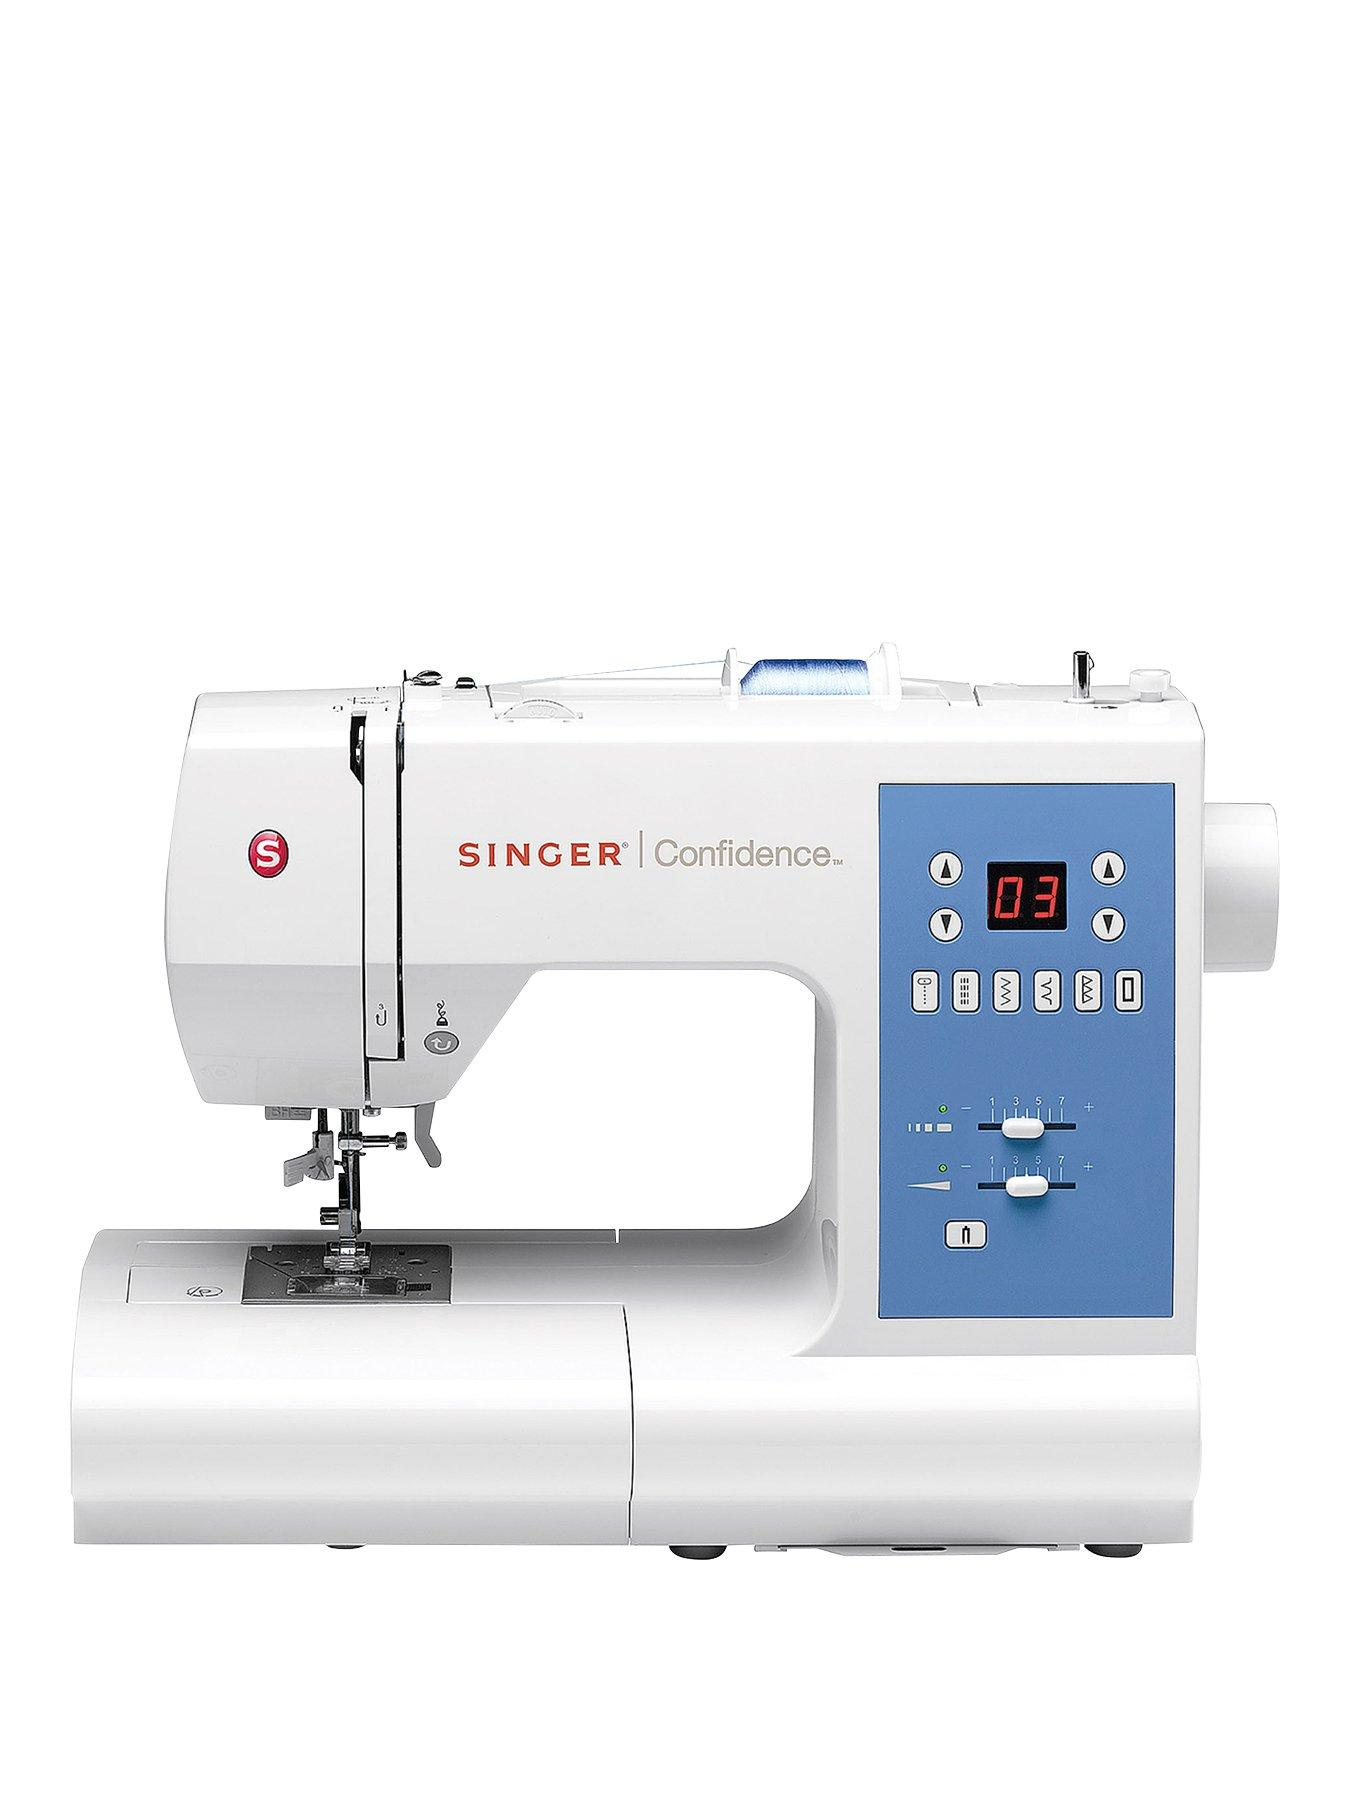 1980 Singer Sewing Machine : singer, sewing, machine, Singer, Confidence, Sewing, Machine, Very.co.uk